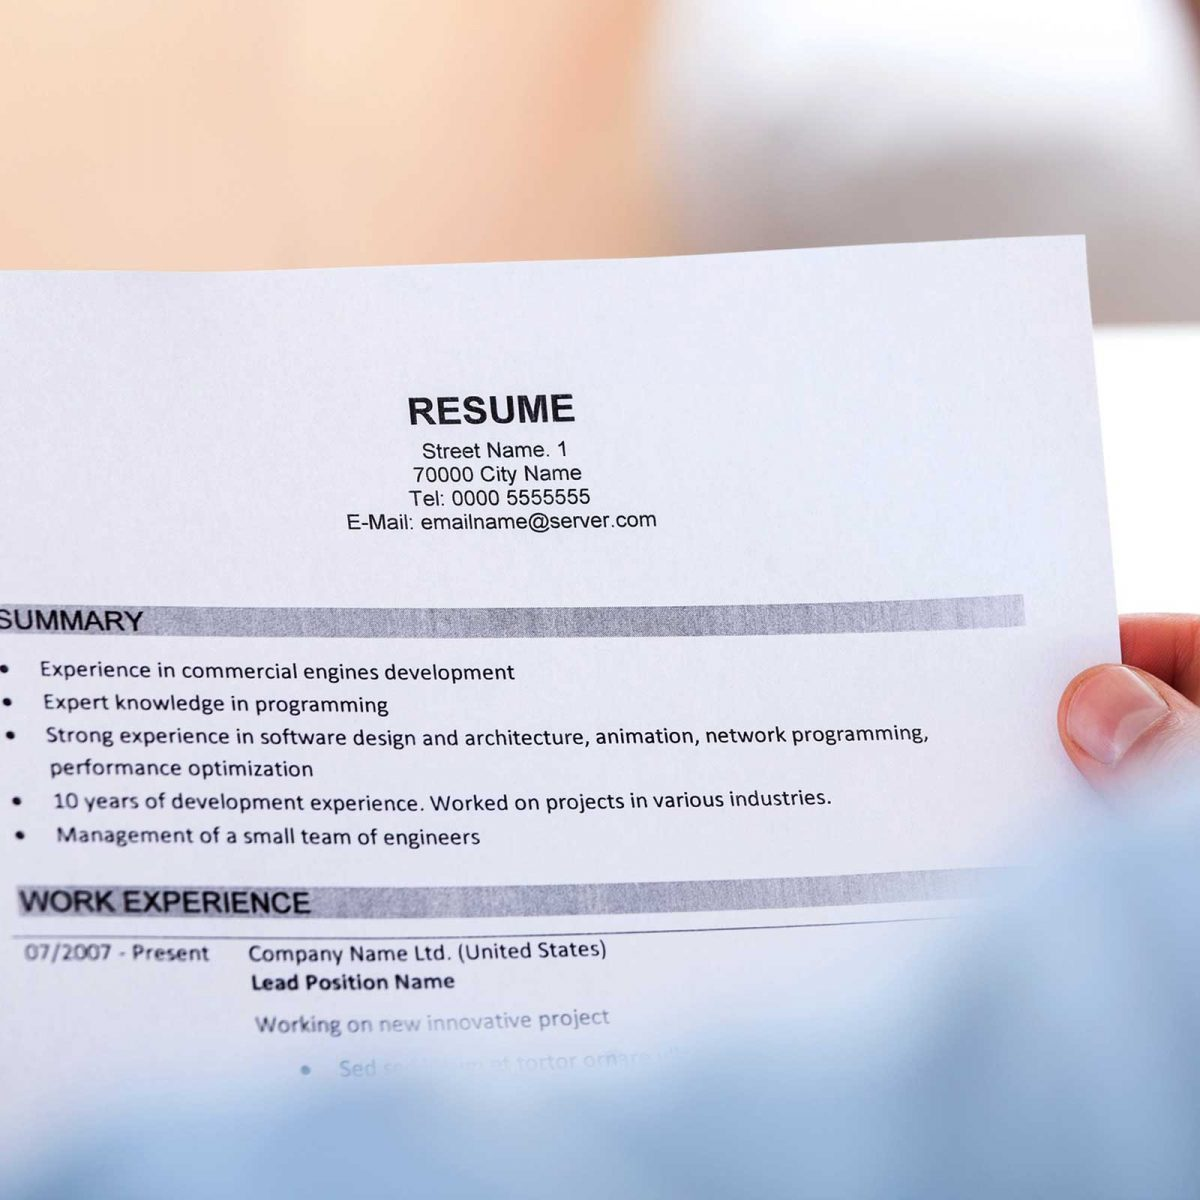 The Best Way to Explain a Resume Gap, According to Top Recruiters